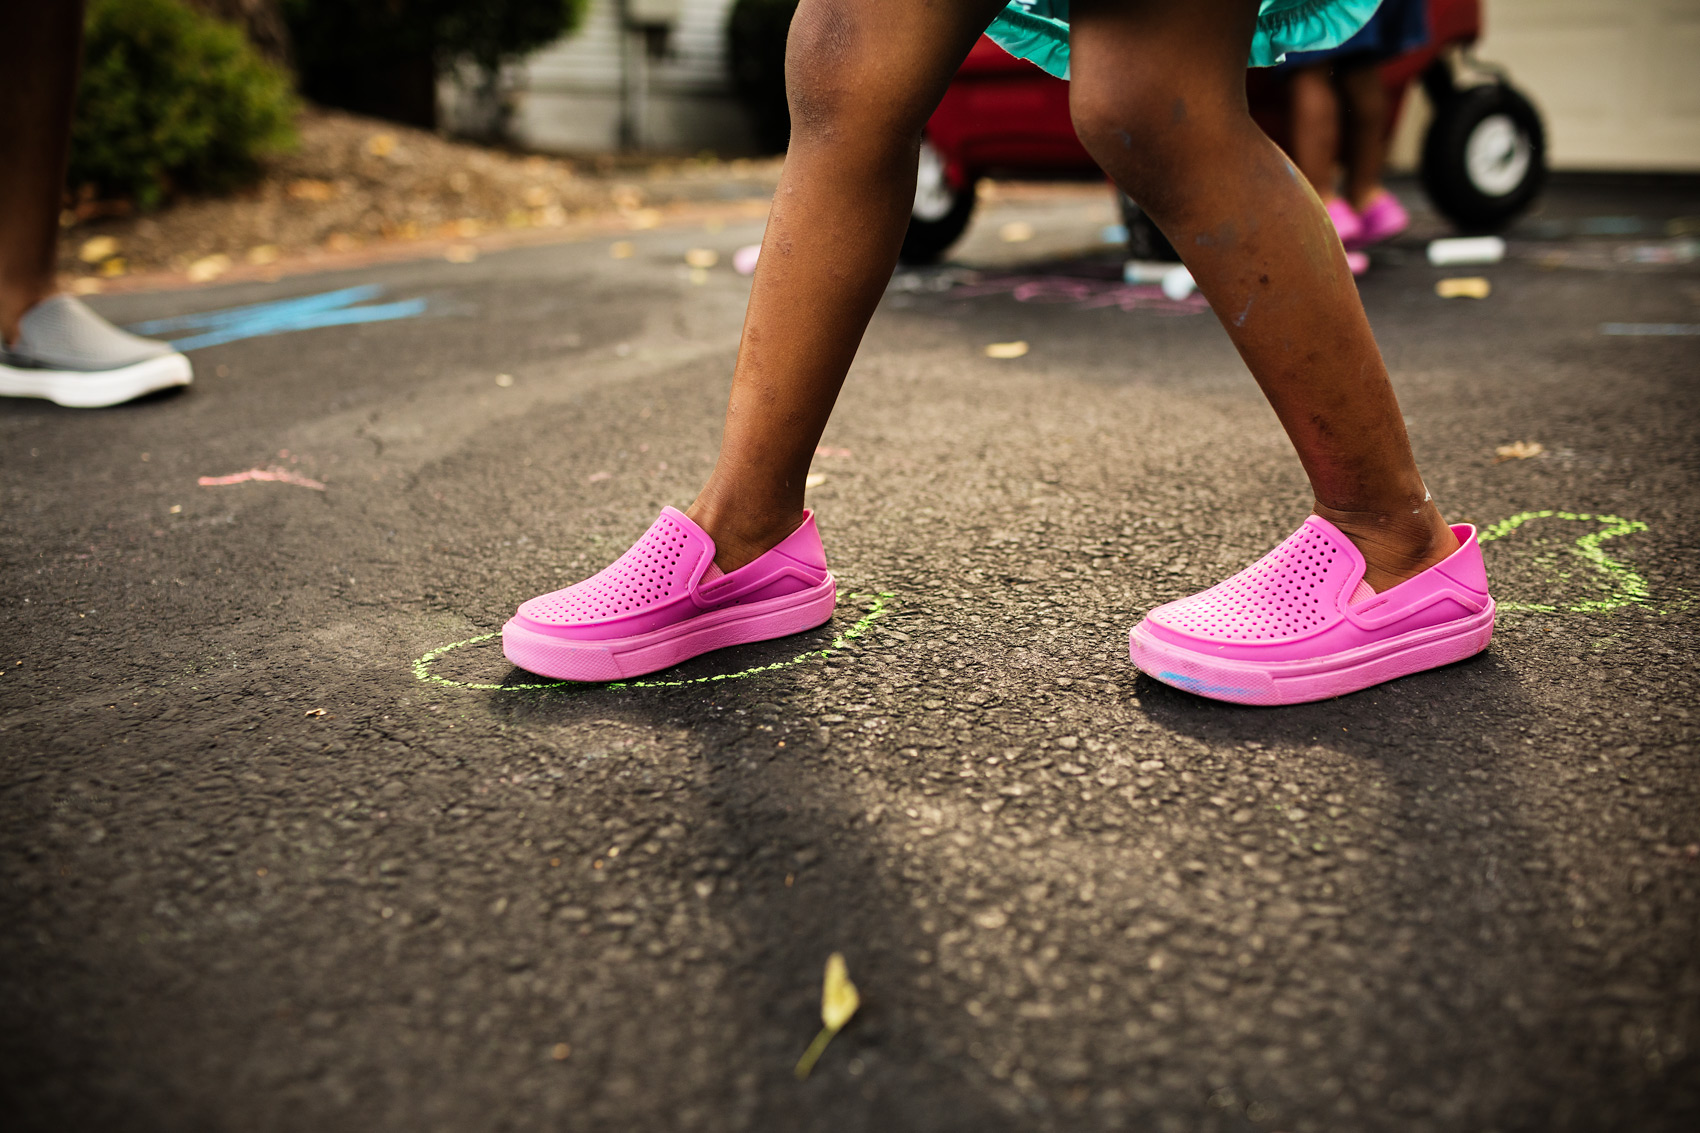 girl walking in pink crocs in driveway, washington dc commercial photography